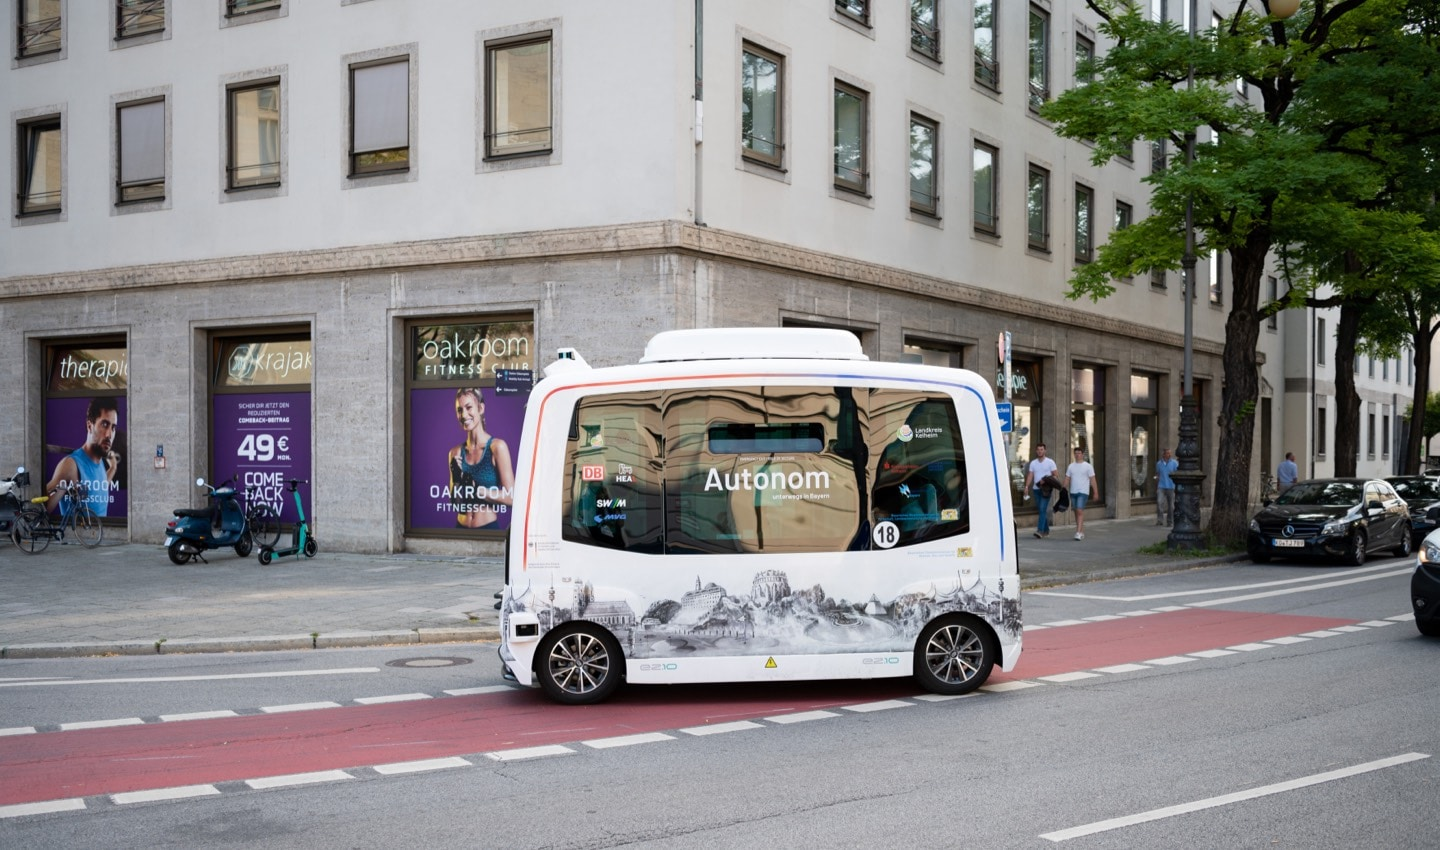 The IAA had its own autonomous shuttle bus driving through Munich during the event.